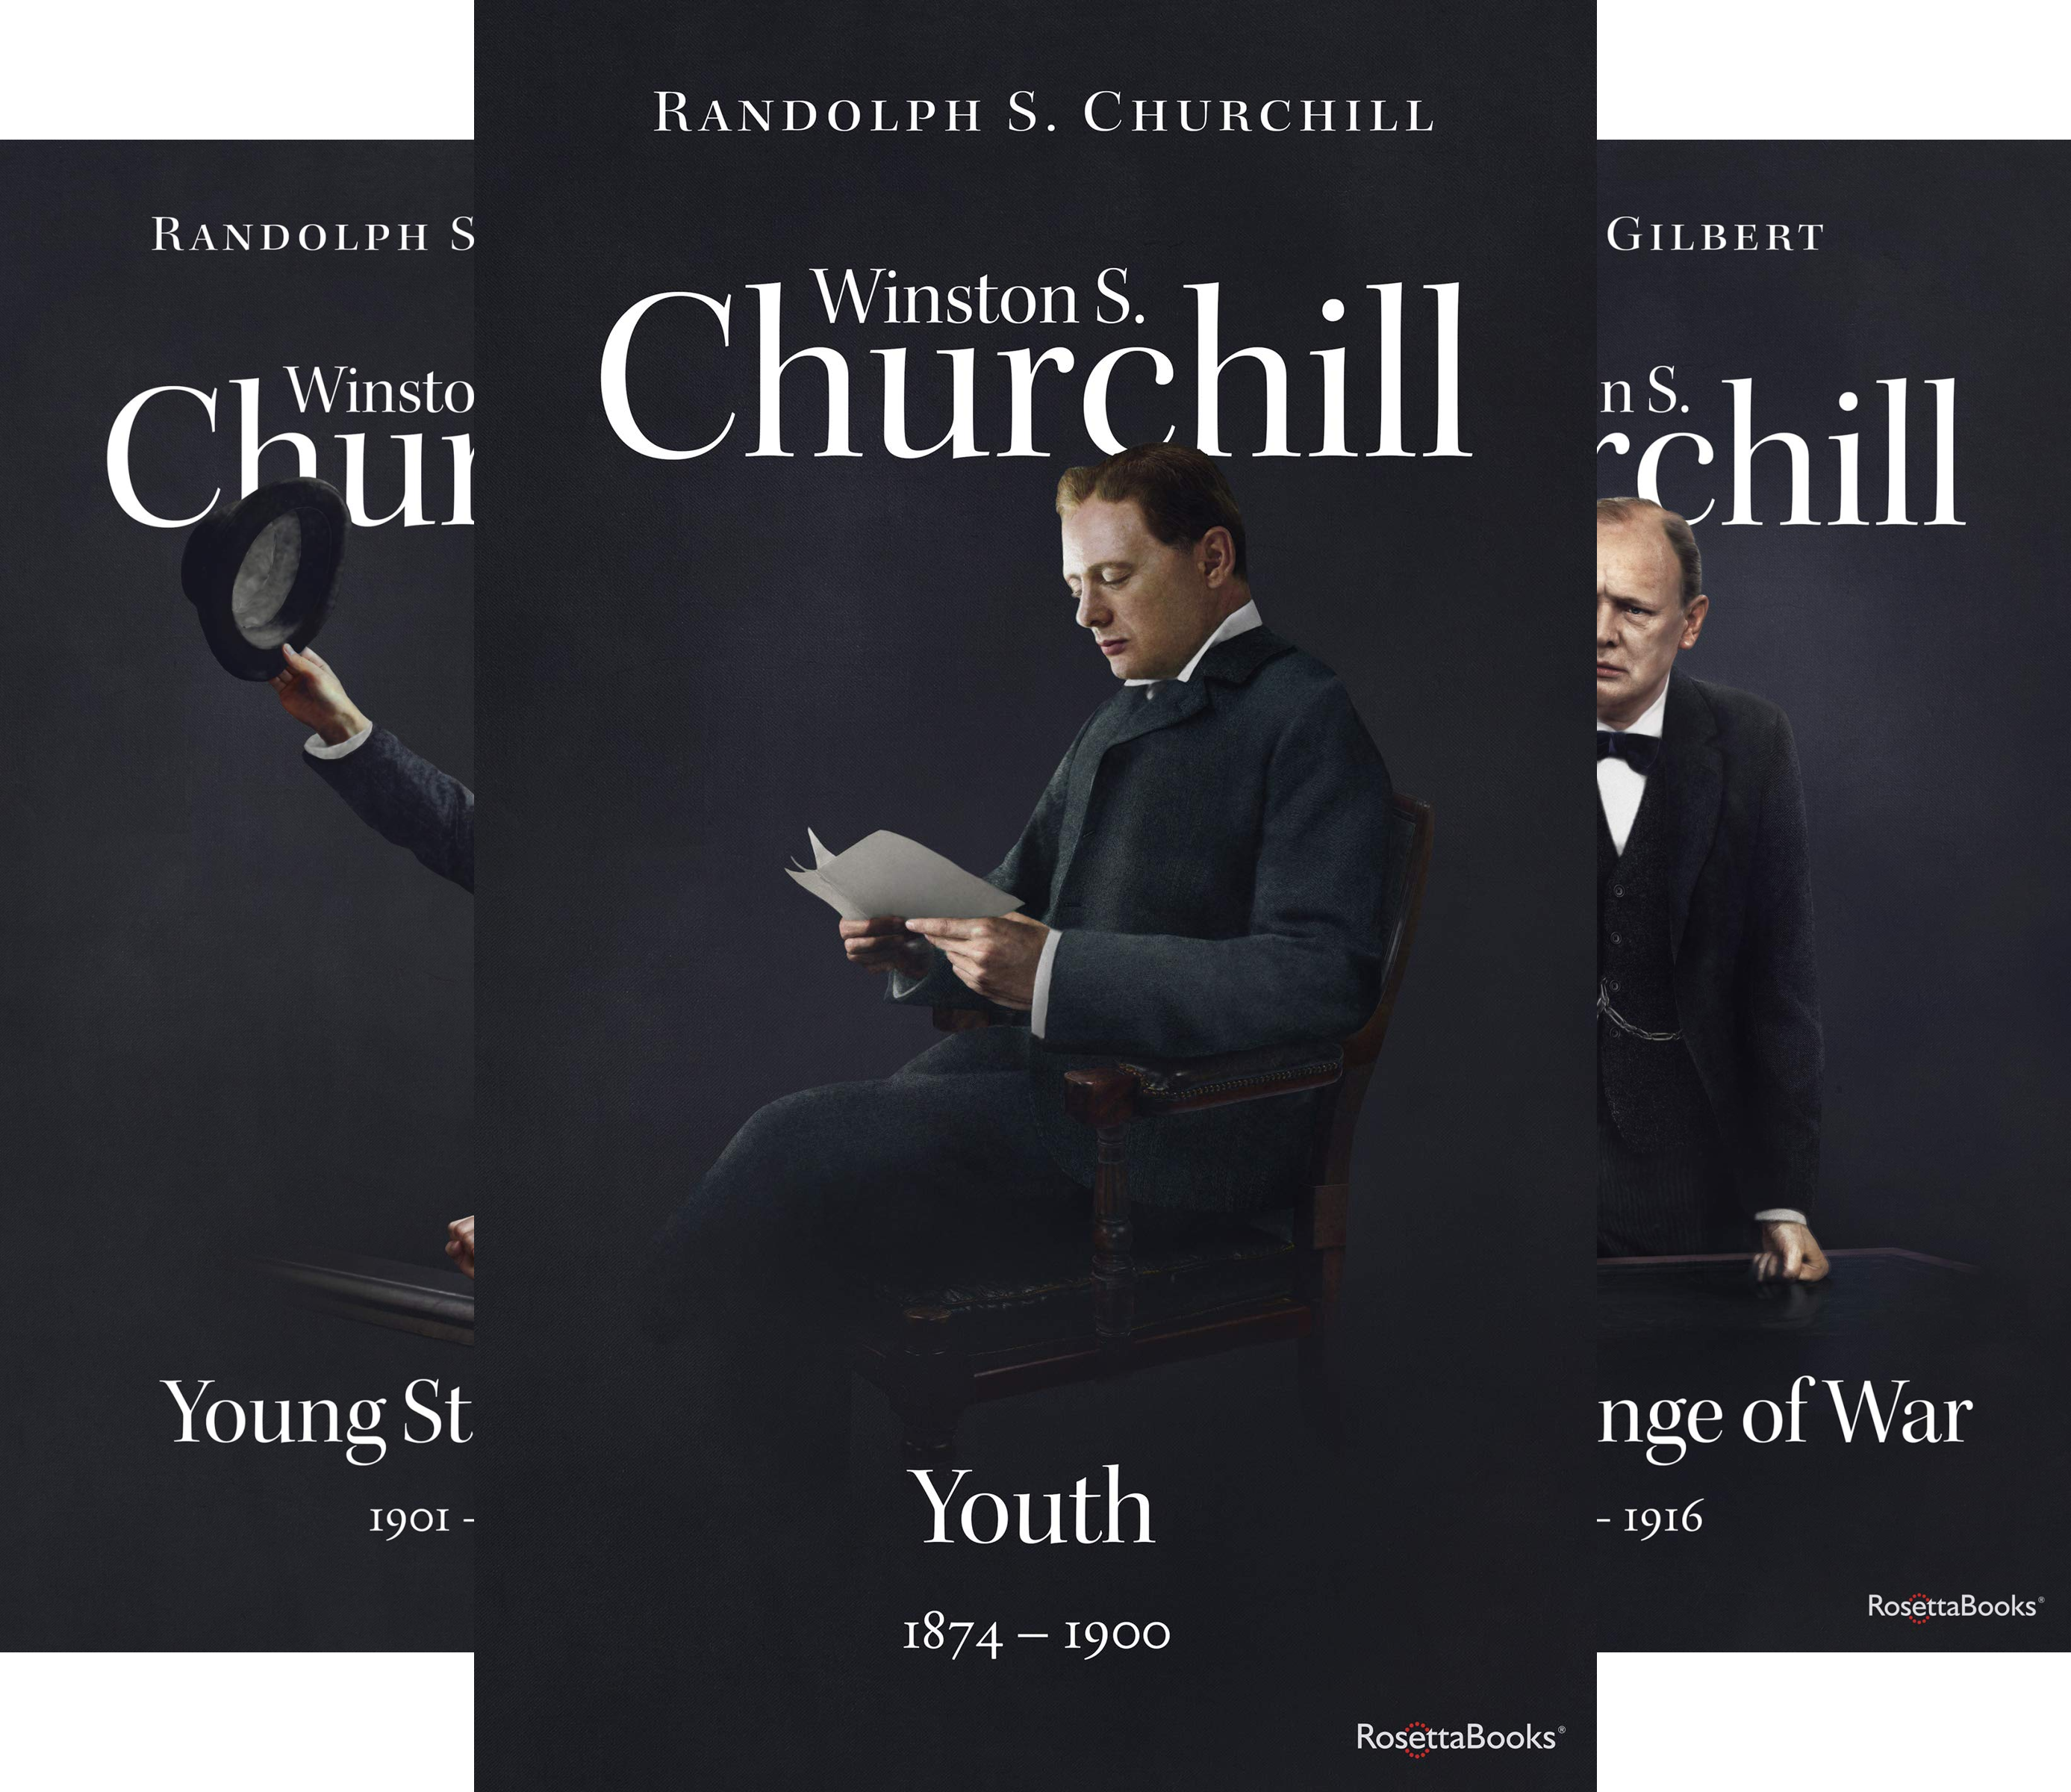 Winston S. Churchill Biography (5 Book Series)